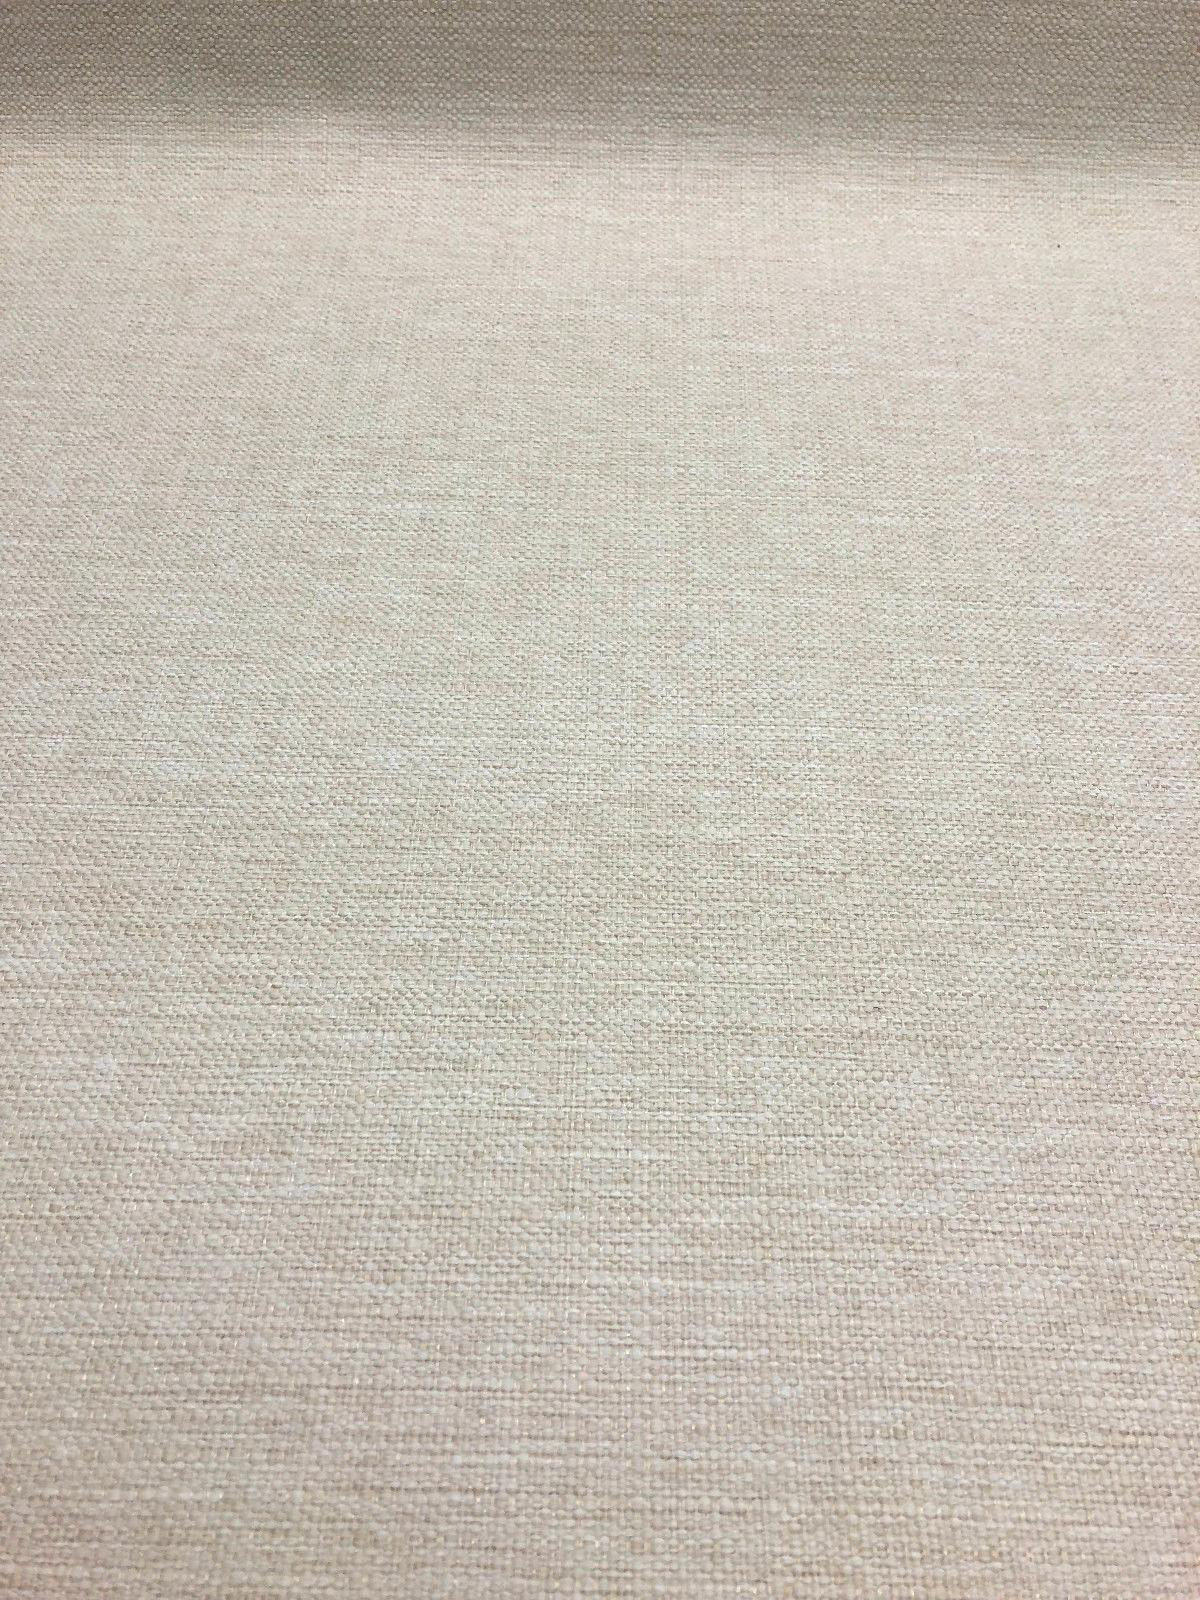 Durable Upholstery Fabric For Sofa Sampson Ivory White Chenille Upholstery Fabric Italian Cut By The Yard Sofa